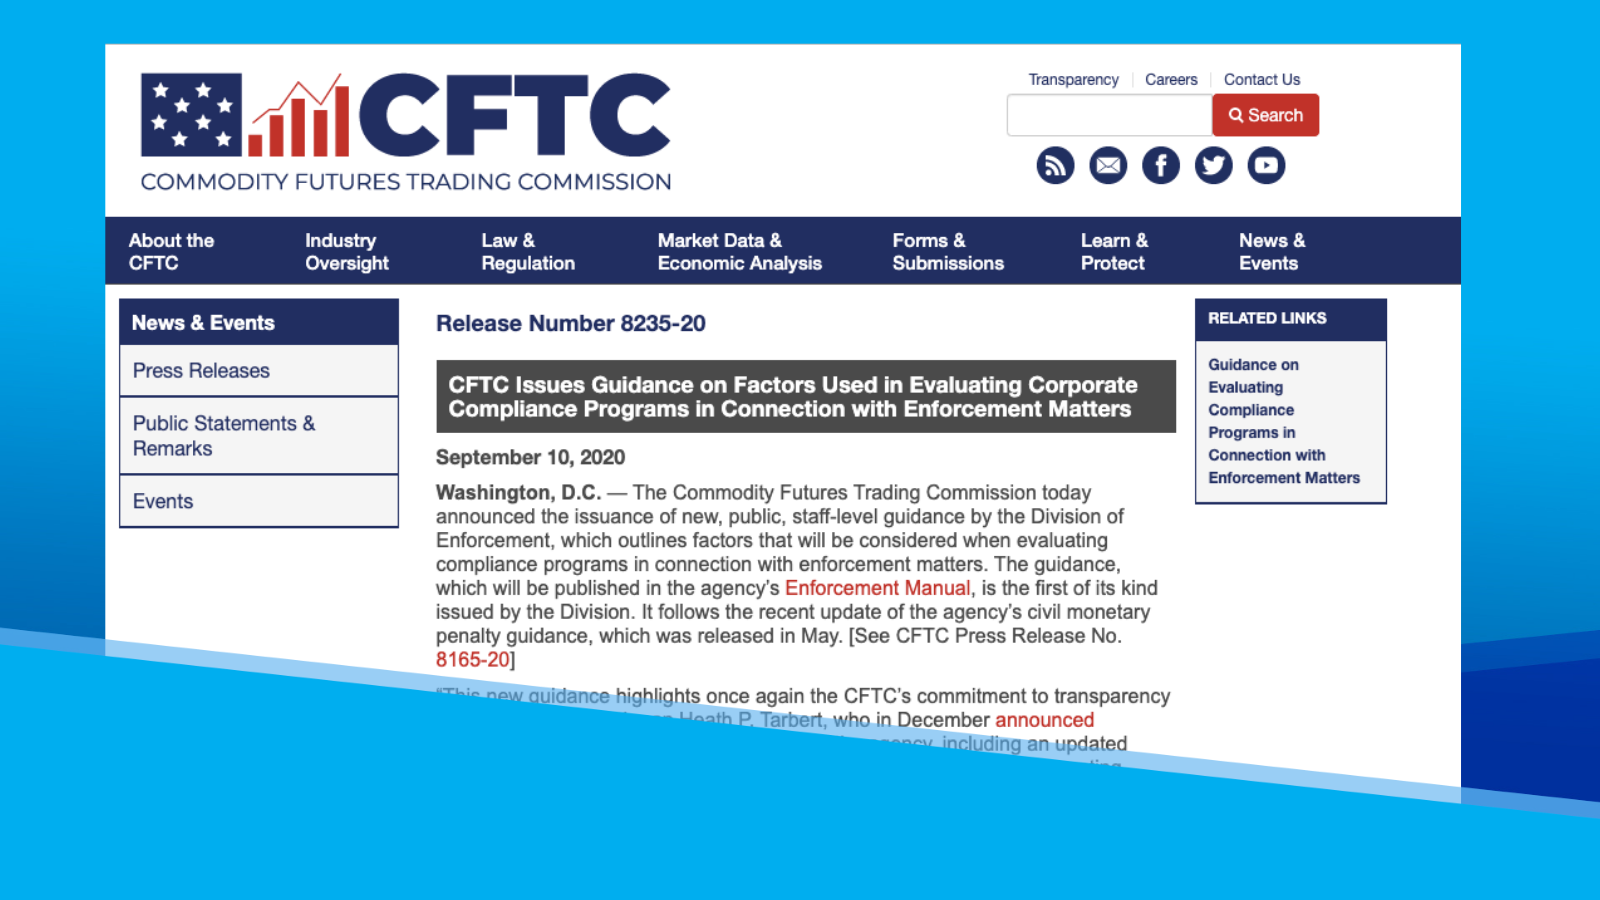 Prevention, Detection, and Remediation: CFTC's Compliance Guidance